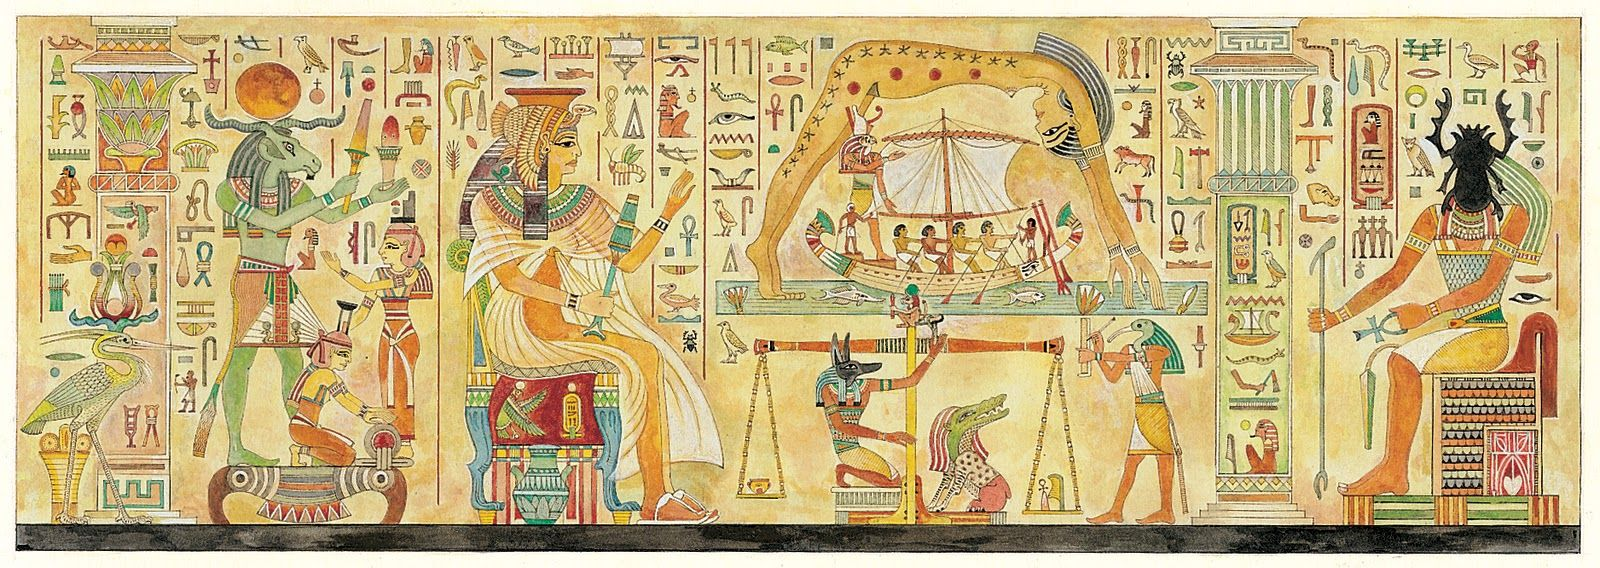 egyptian gods - pesquisa google | art world: ancient egypt